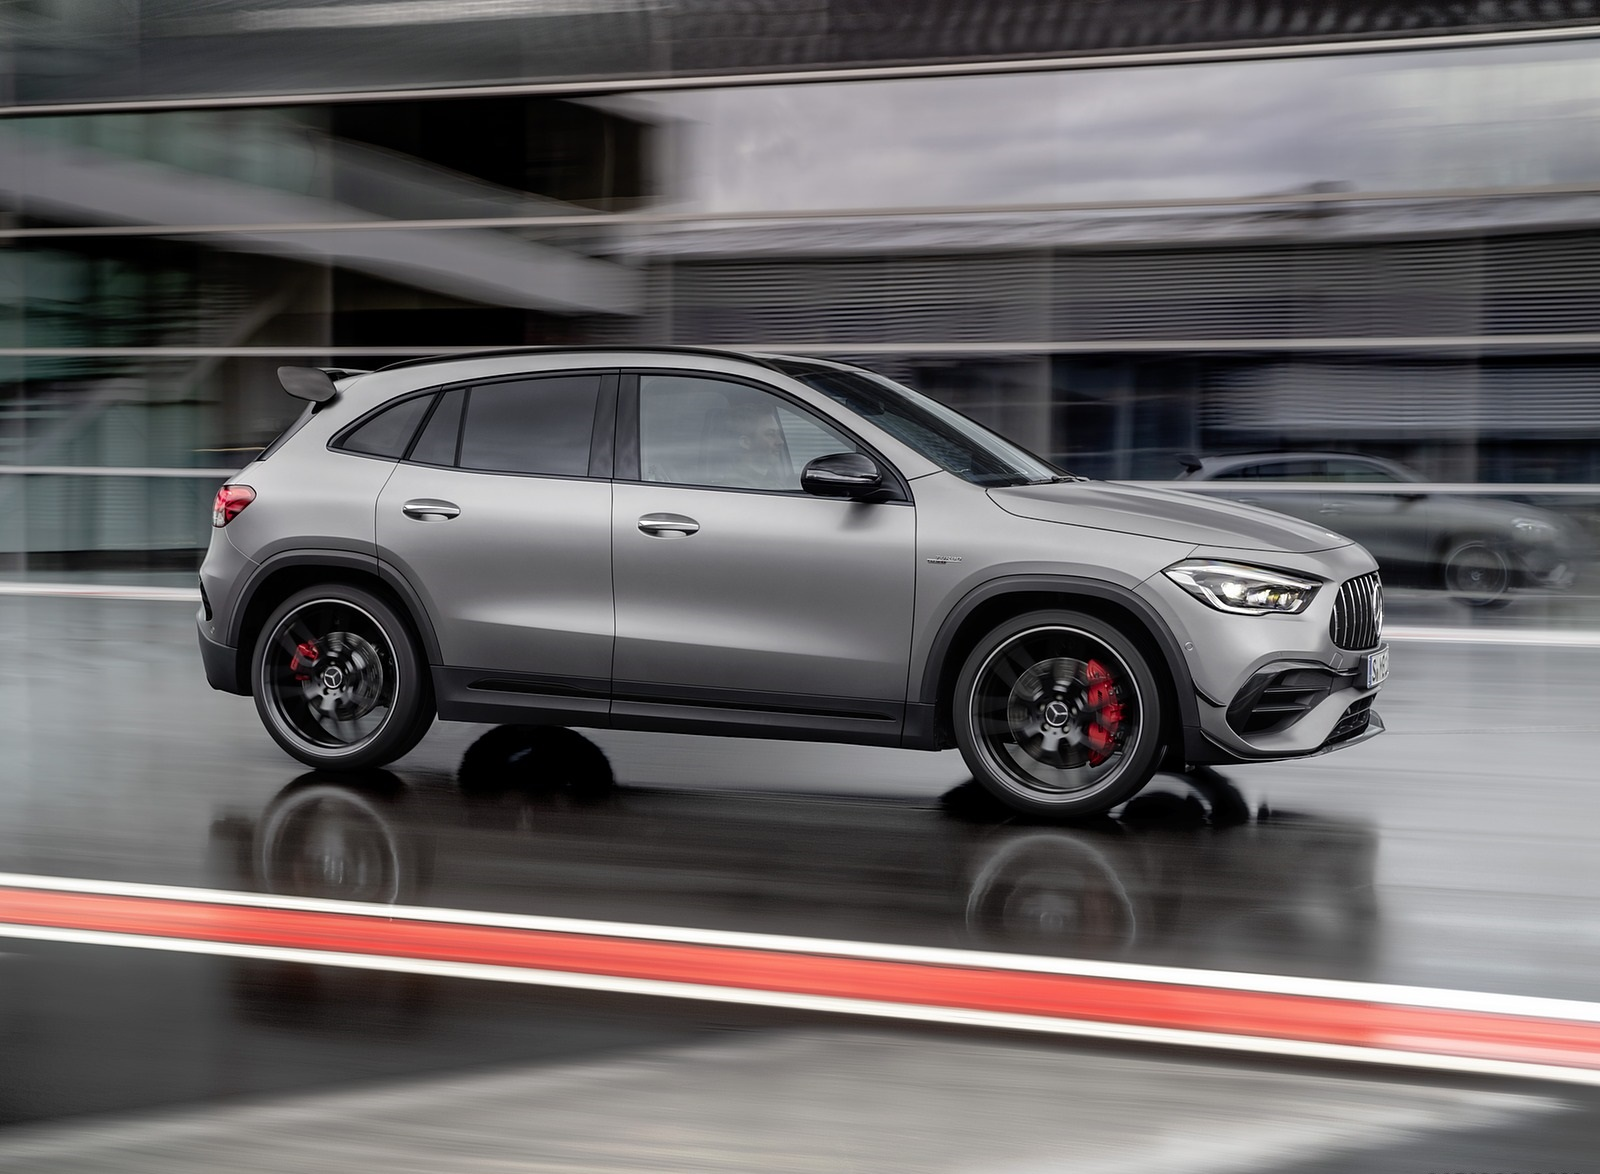 2021 Mercedes-AMG GLA 45 S 4MATIC+ (Color: Magno Grey) Side Wallpapers (2)